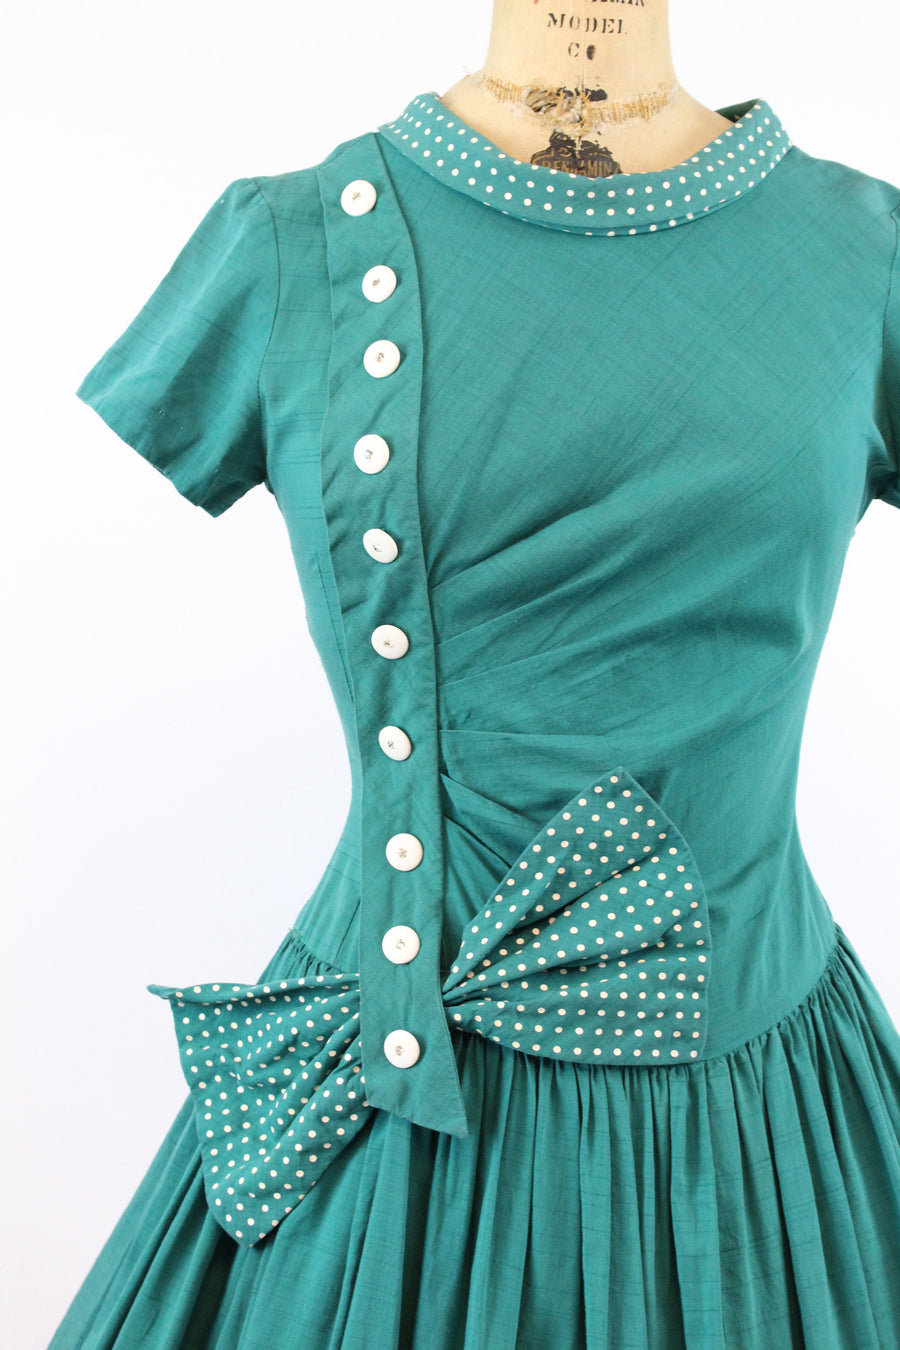 1950s green polka dot bow dress | small